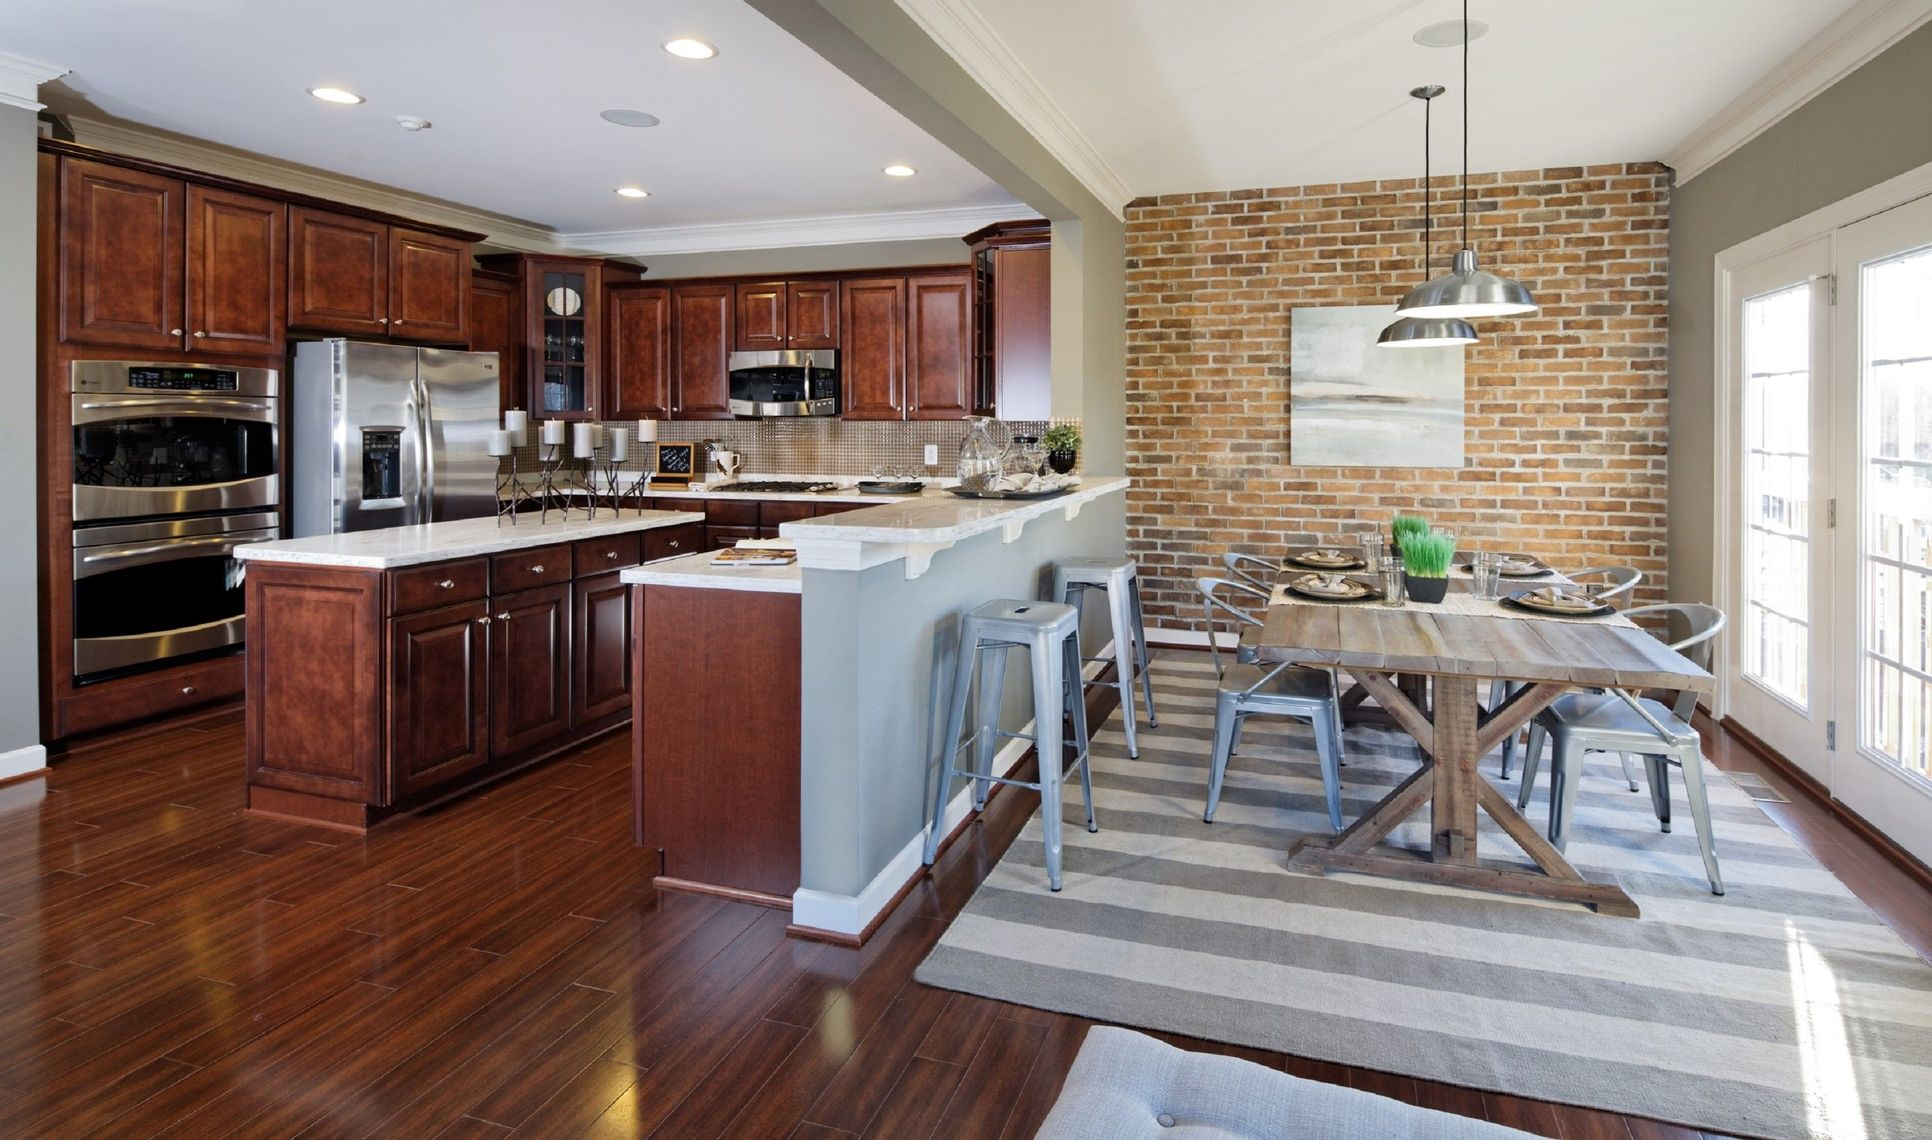 River Pointe Townhomes in Leesburg, VA :: New Homes by K ...